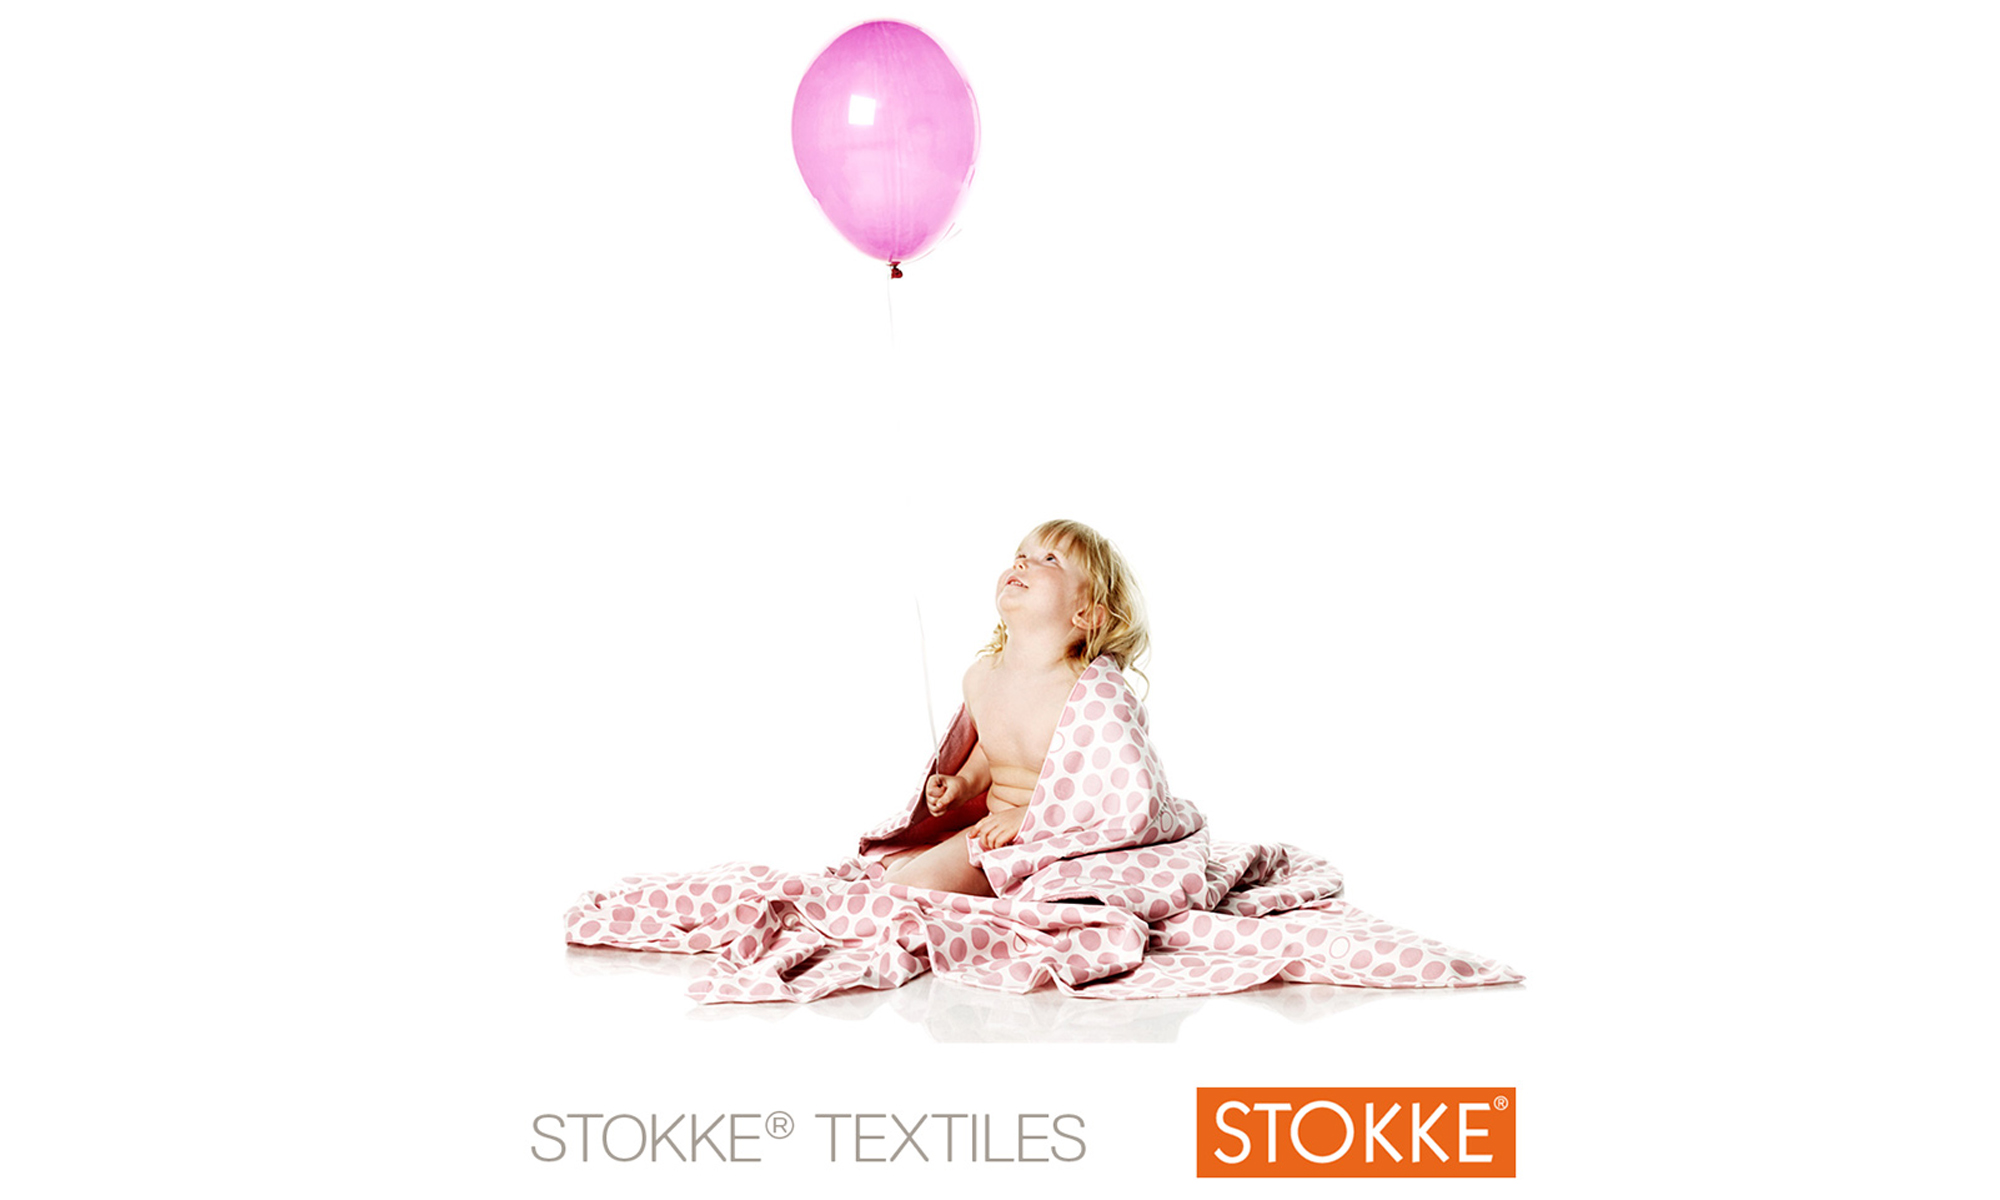 collection Stokke Textiles de Stokke